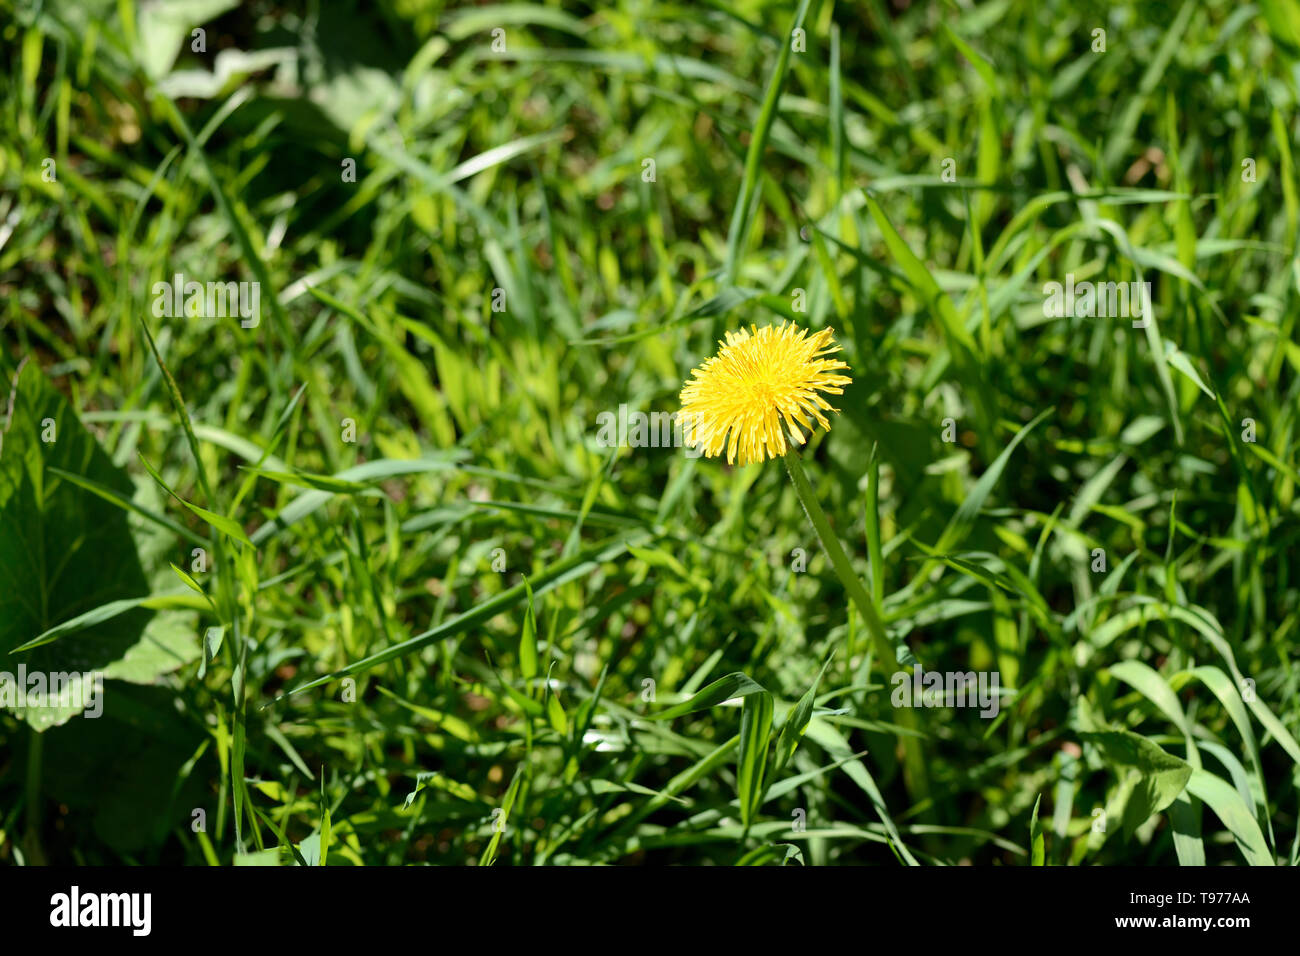 Bright yellow dandelion among the grass on a sunny day - Stock Image